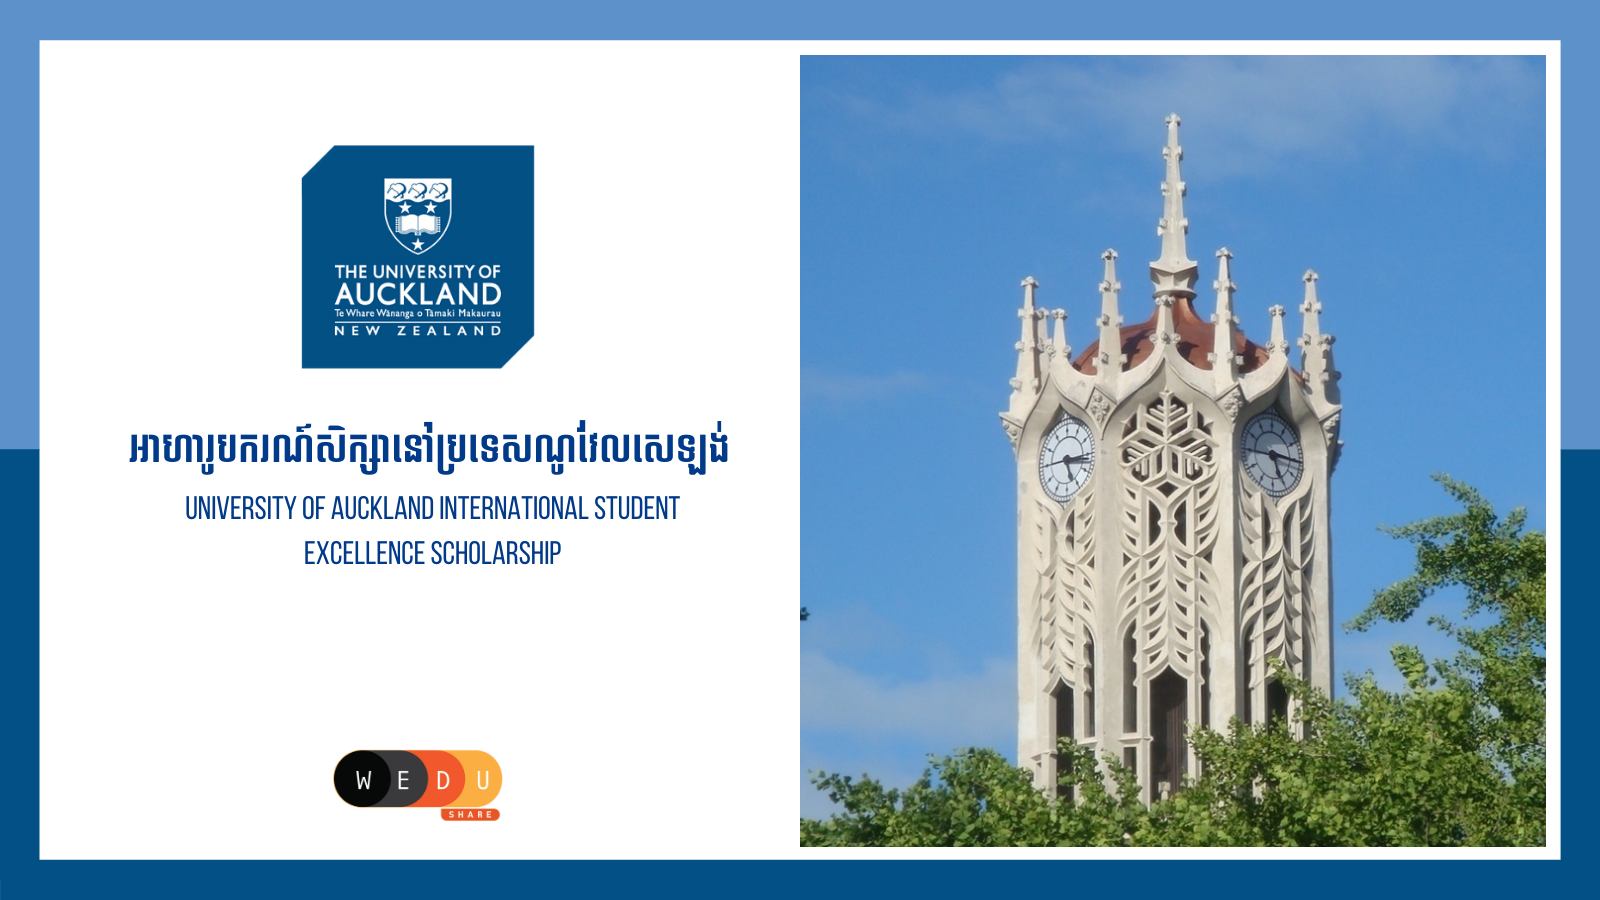 The University Of Auckland International Student Excellence Scholarship